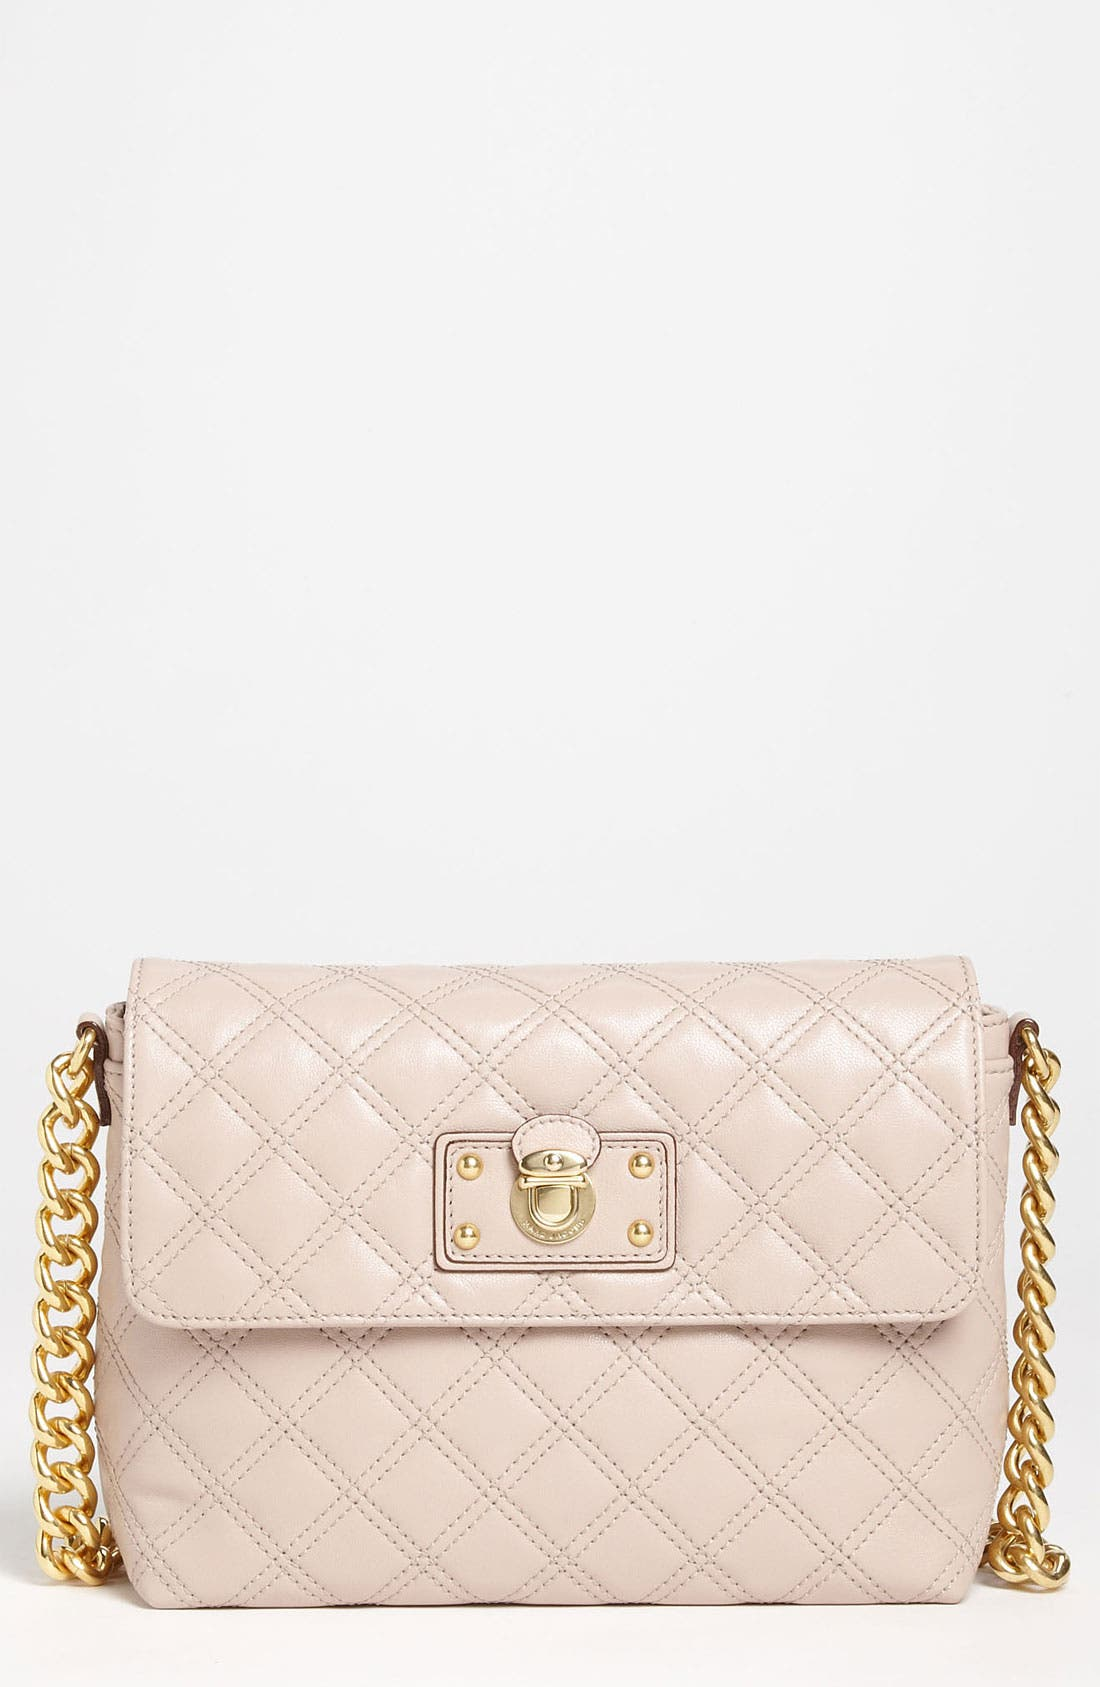 Main Image - MARC JACOBS 'Large Quilting Single' Leather Shoulder Bag